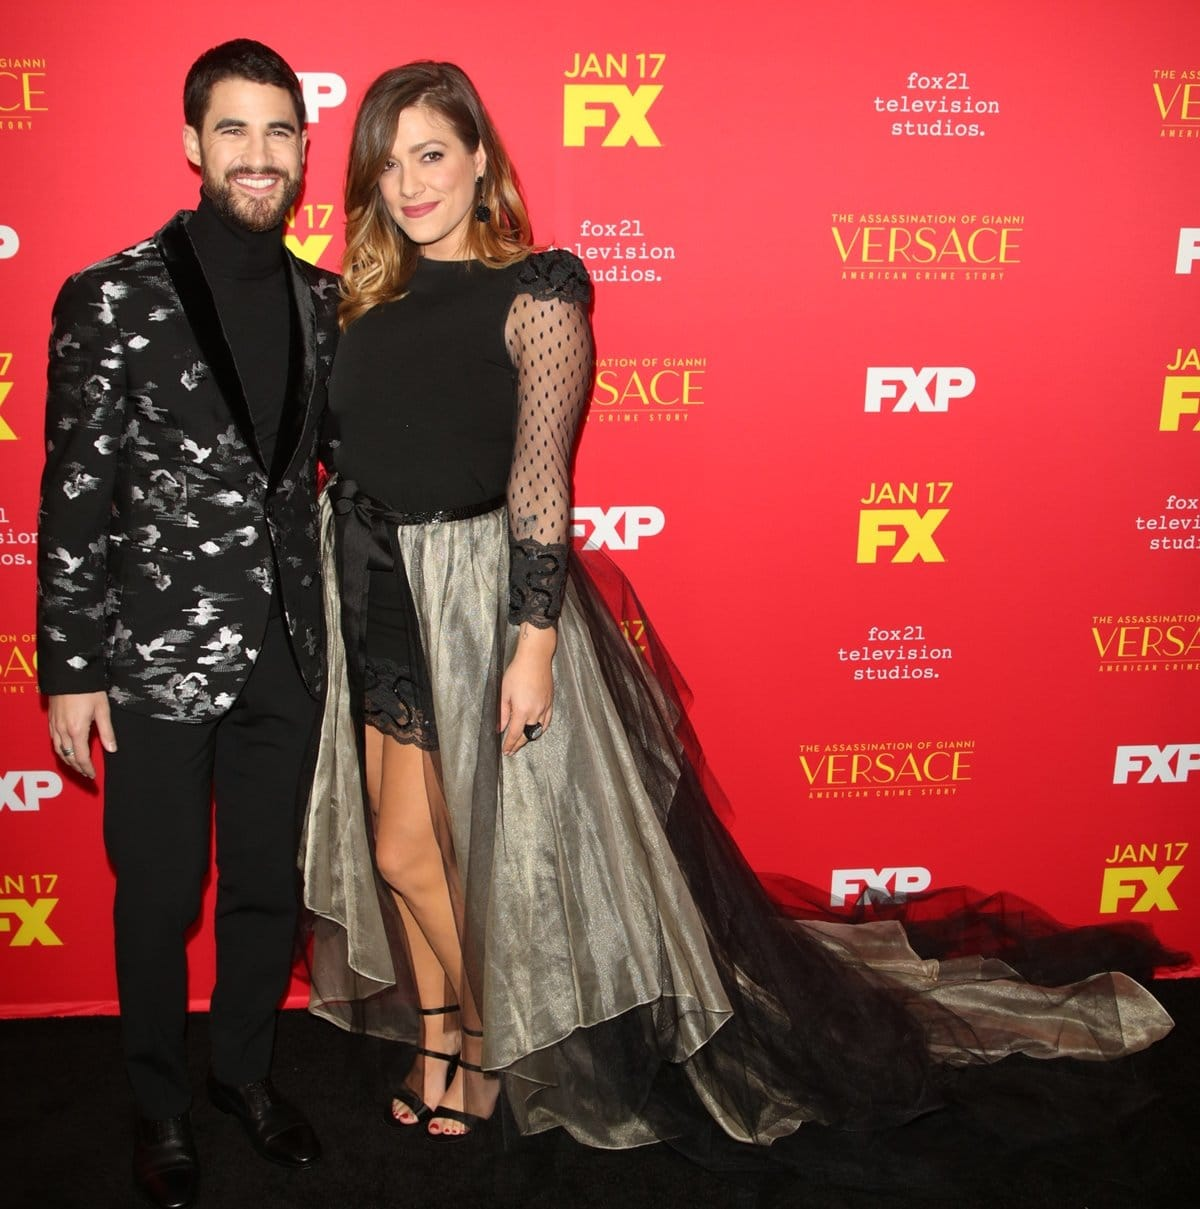 Wearing Emporio Amani, Darren Criss got support from his girlfriend Mia Swier at the premiere of his new series American Crime Story: The Assassination of Gianni Versace